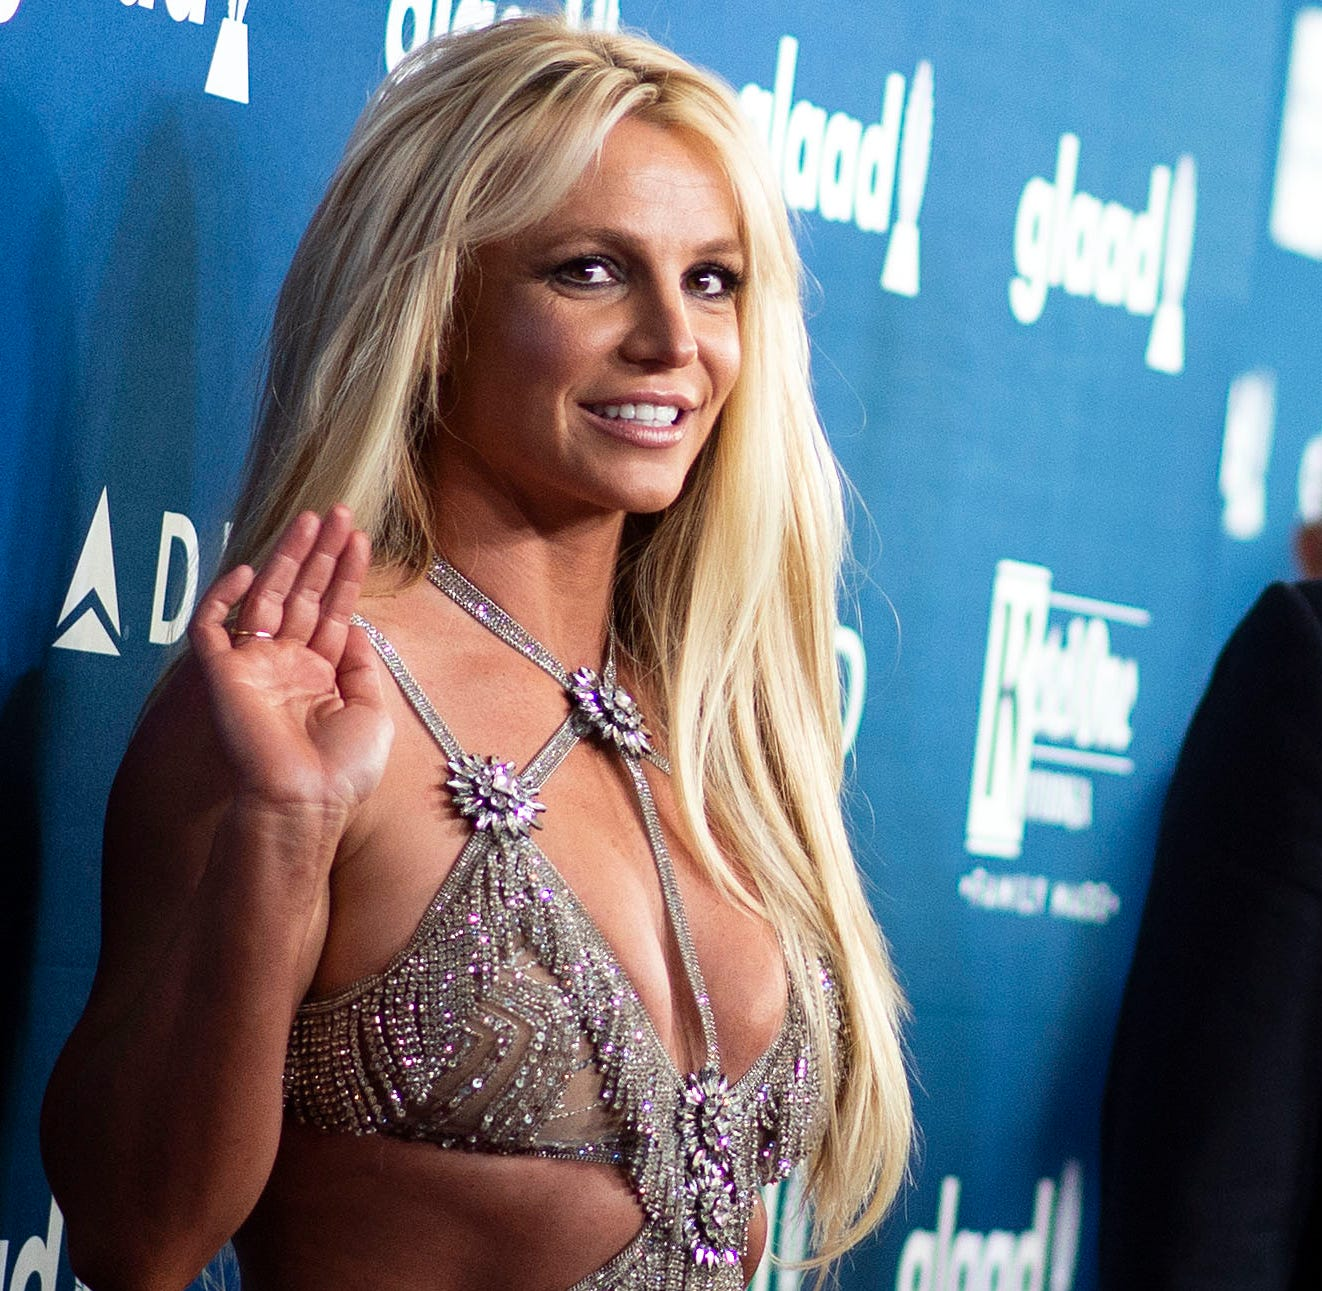 (FILES) In this file photo taken on April 12, 2018, singer Britney Spears attends the 29th Annual GLAAD Media Awards at the Beverly Hilton in Beverly Hills, California. - Pop singer Britney Spears has cancelled her residency in Las Vegas to care for her sick father, putting off her career indefinitely,  she said Friday, January 4, 2019. (Photo by VALERIE MACON / AFP)VALERIE MACON/AFP/Getty Images ORG XMIT: Britney S ORIG FILE ID: AFP_1BZ49R